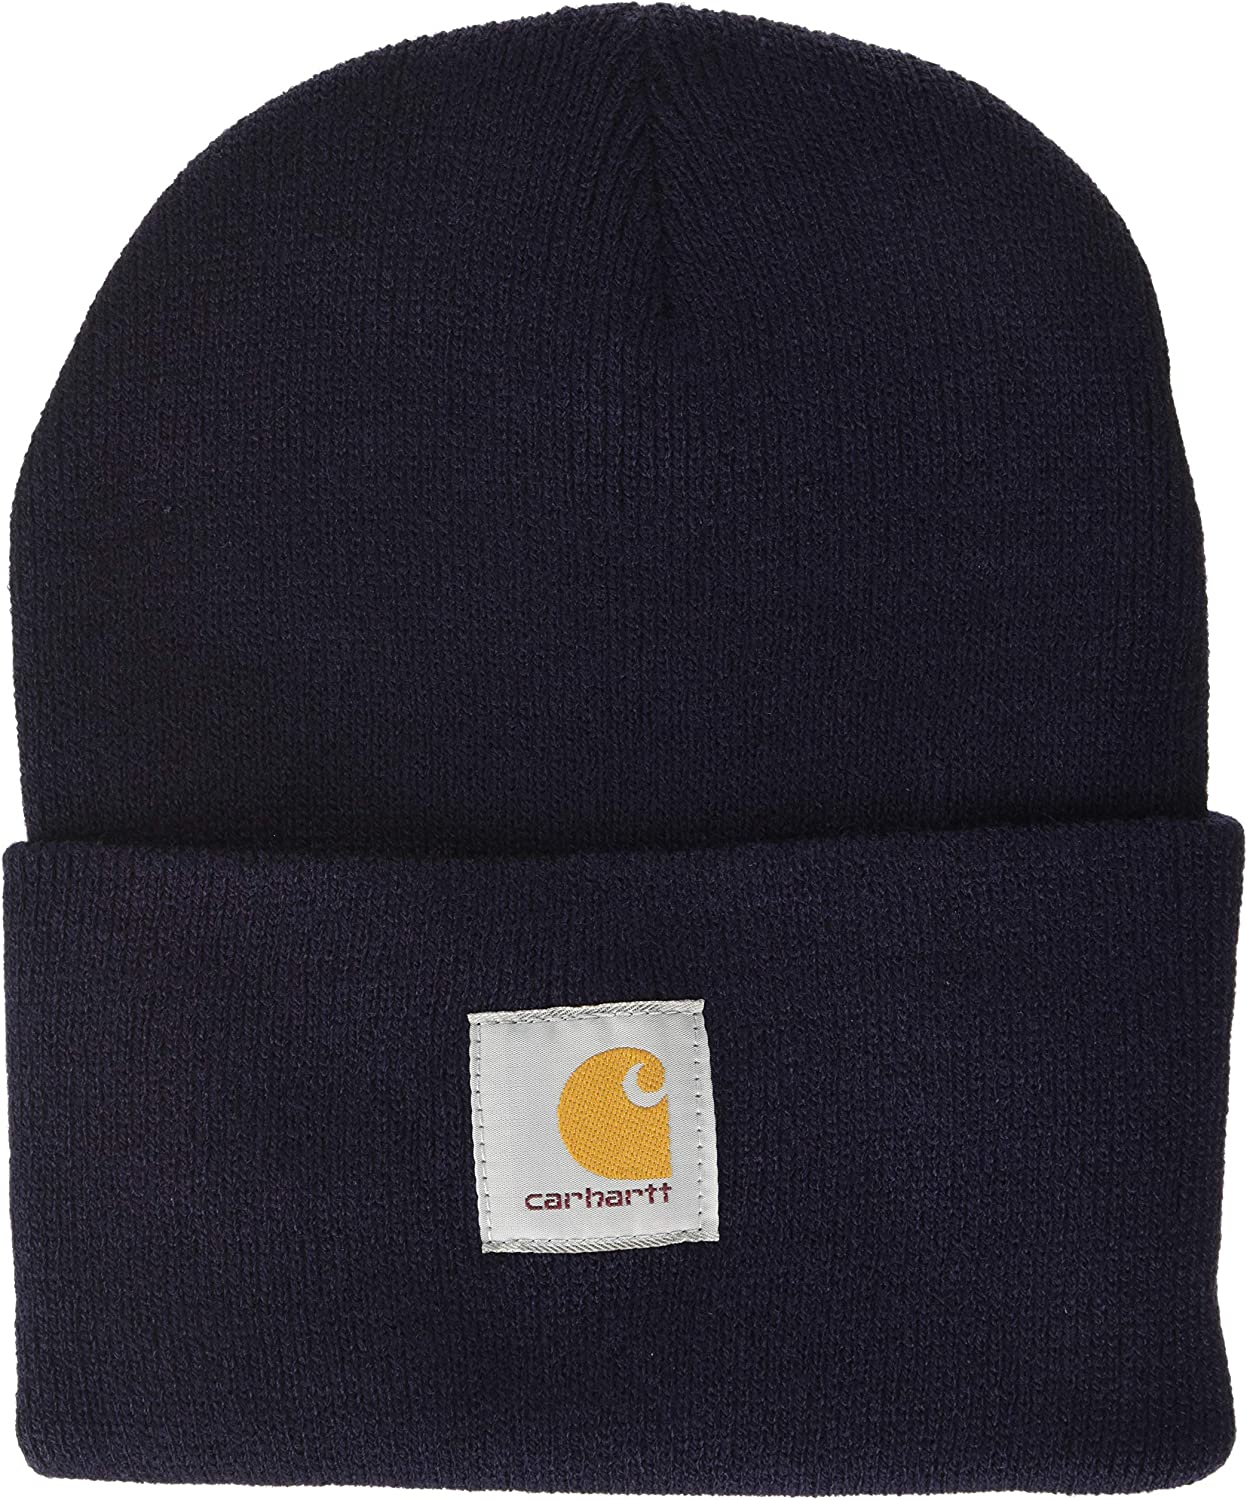 Carhartt Men's Knit Cuffed Beanie, Navy, One Size at  Men's Clothing store: Cold Weather Hats